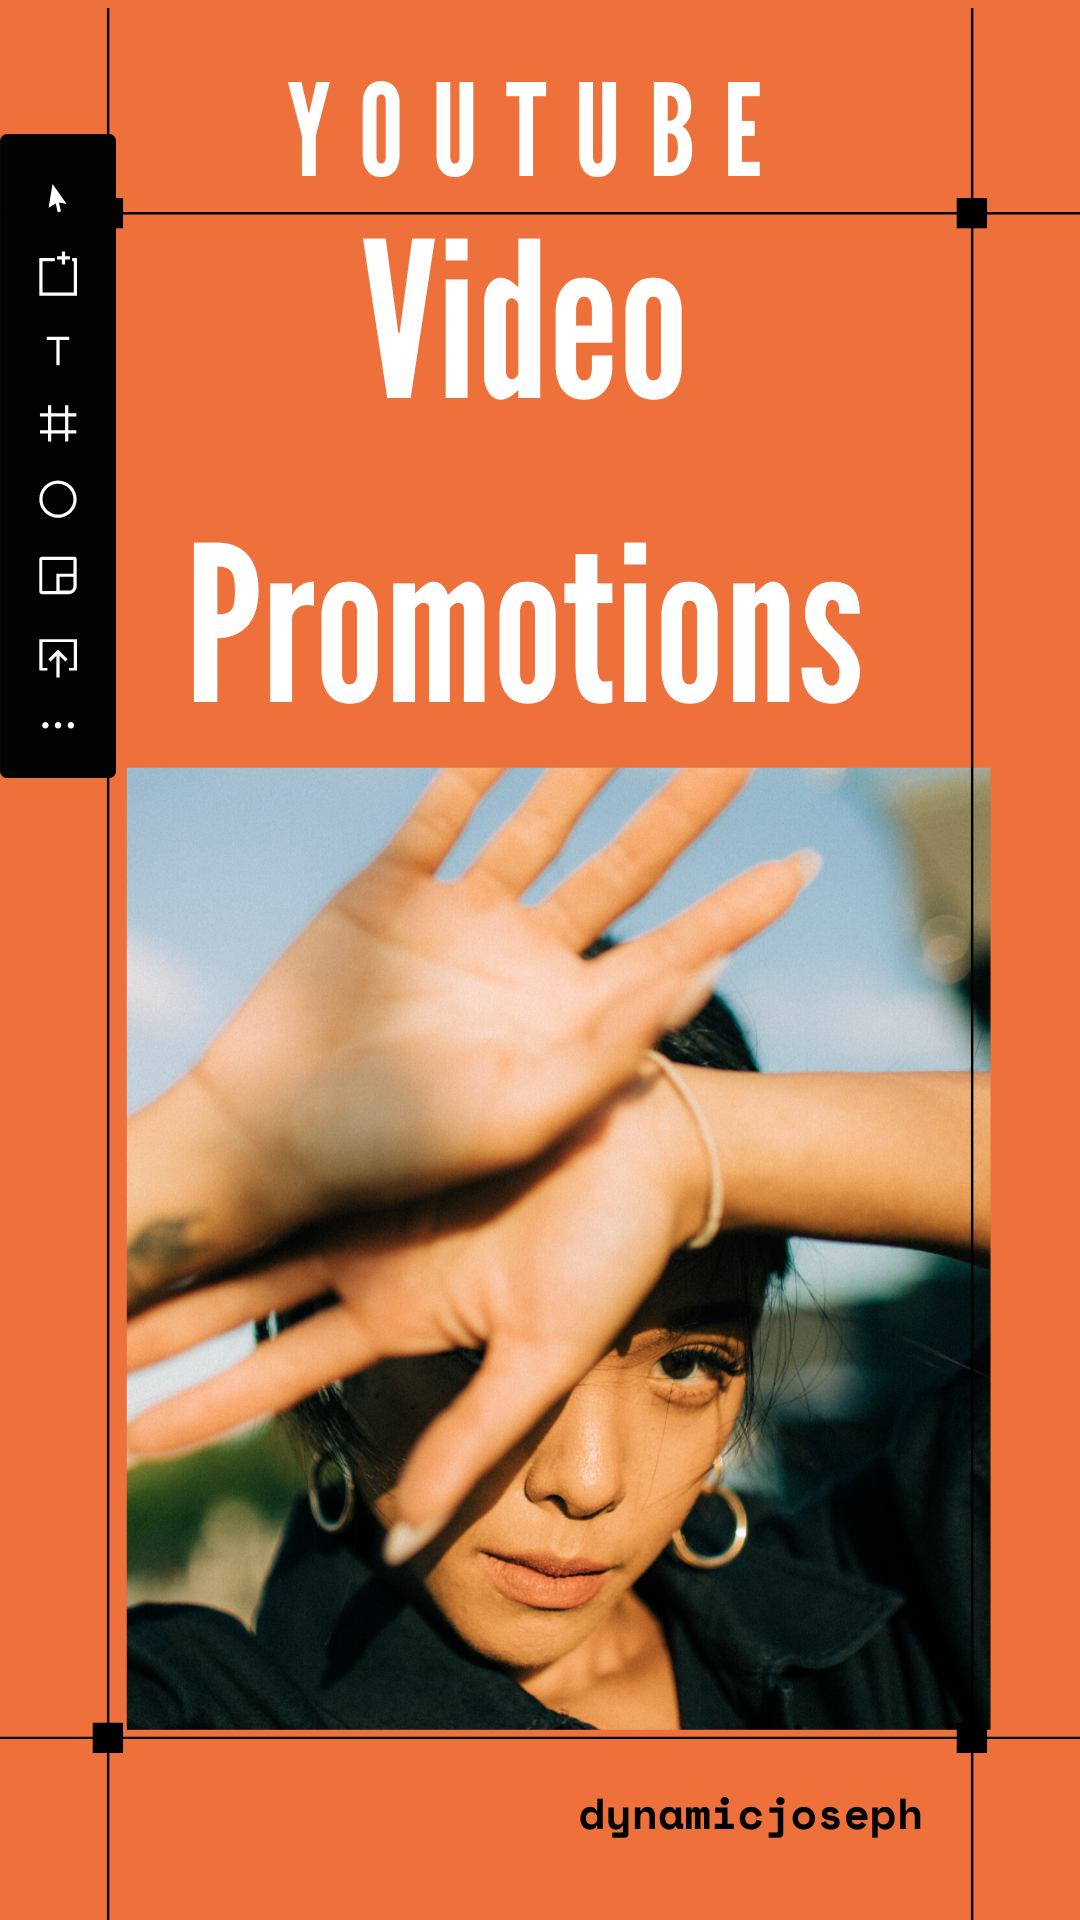 YouTube video Promotions through Social Media and Blog